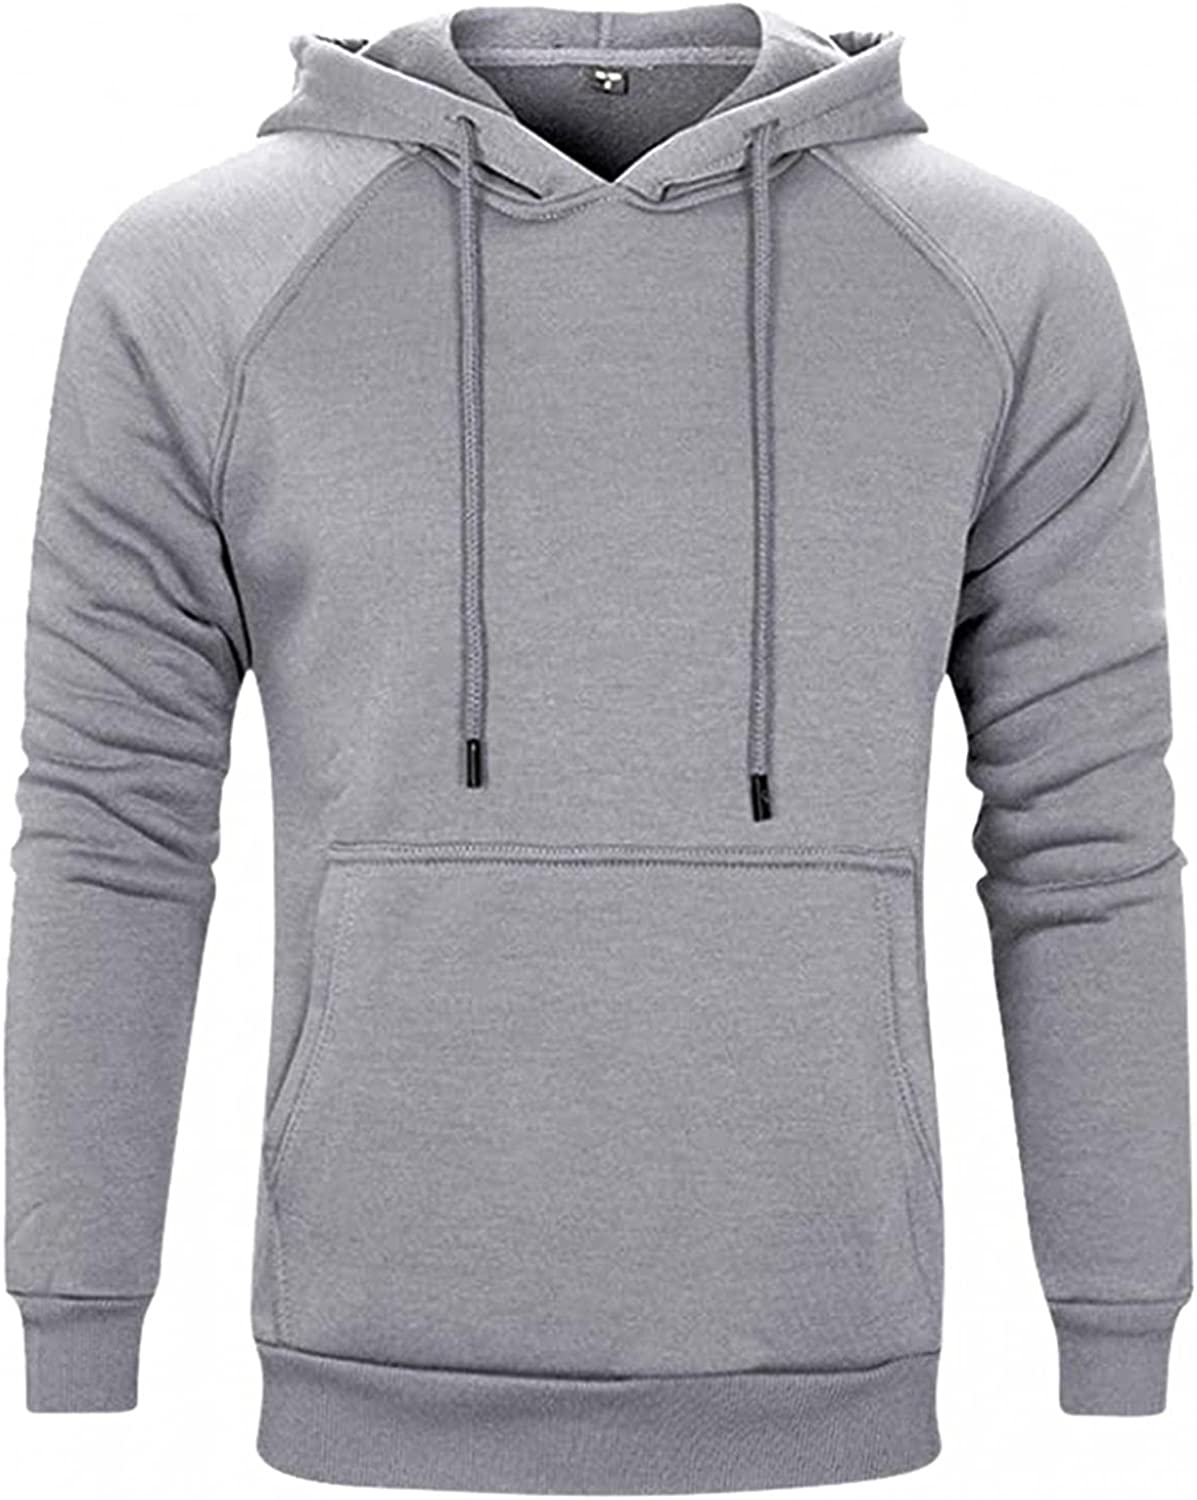 Aayomet Pullover Hoodies for Men Solid Long Sleeve Hooded Sweatshirts Casual Workout Sport Blouses Tops Sweaters